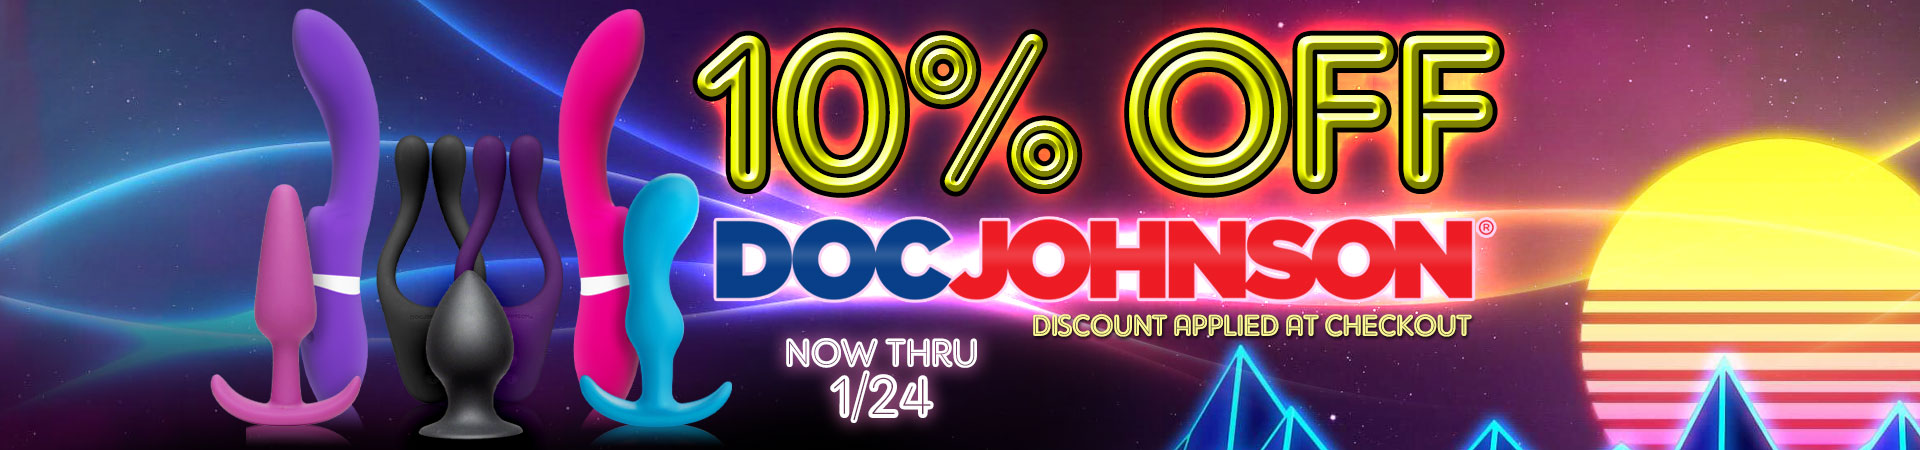 10% off of Doc Johnson - Now Thru 1/24 - Discount Applied At Checkout